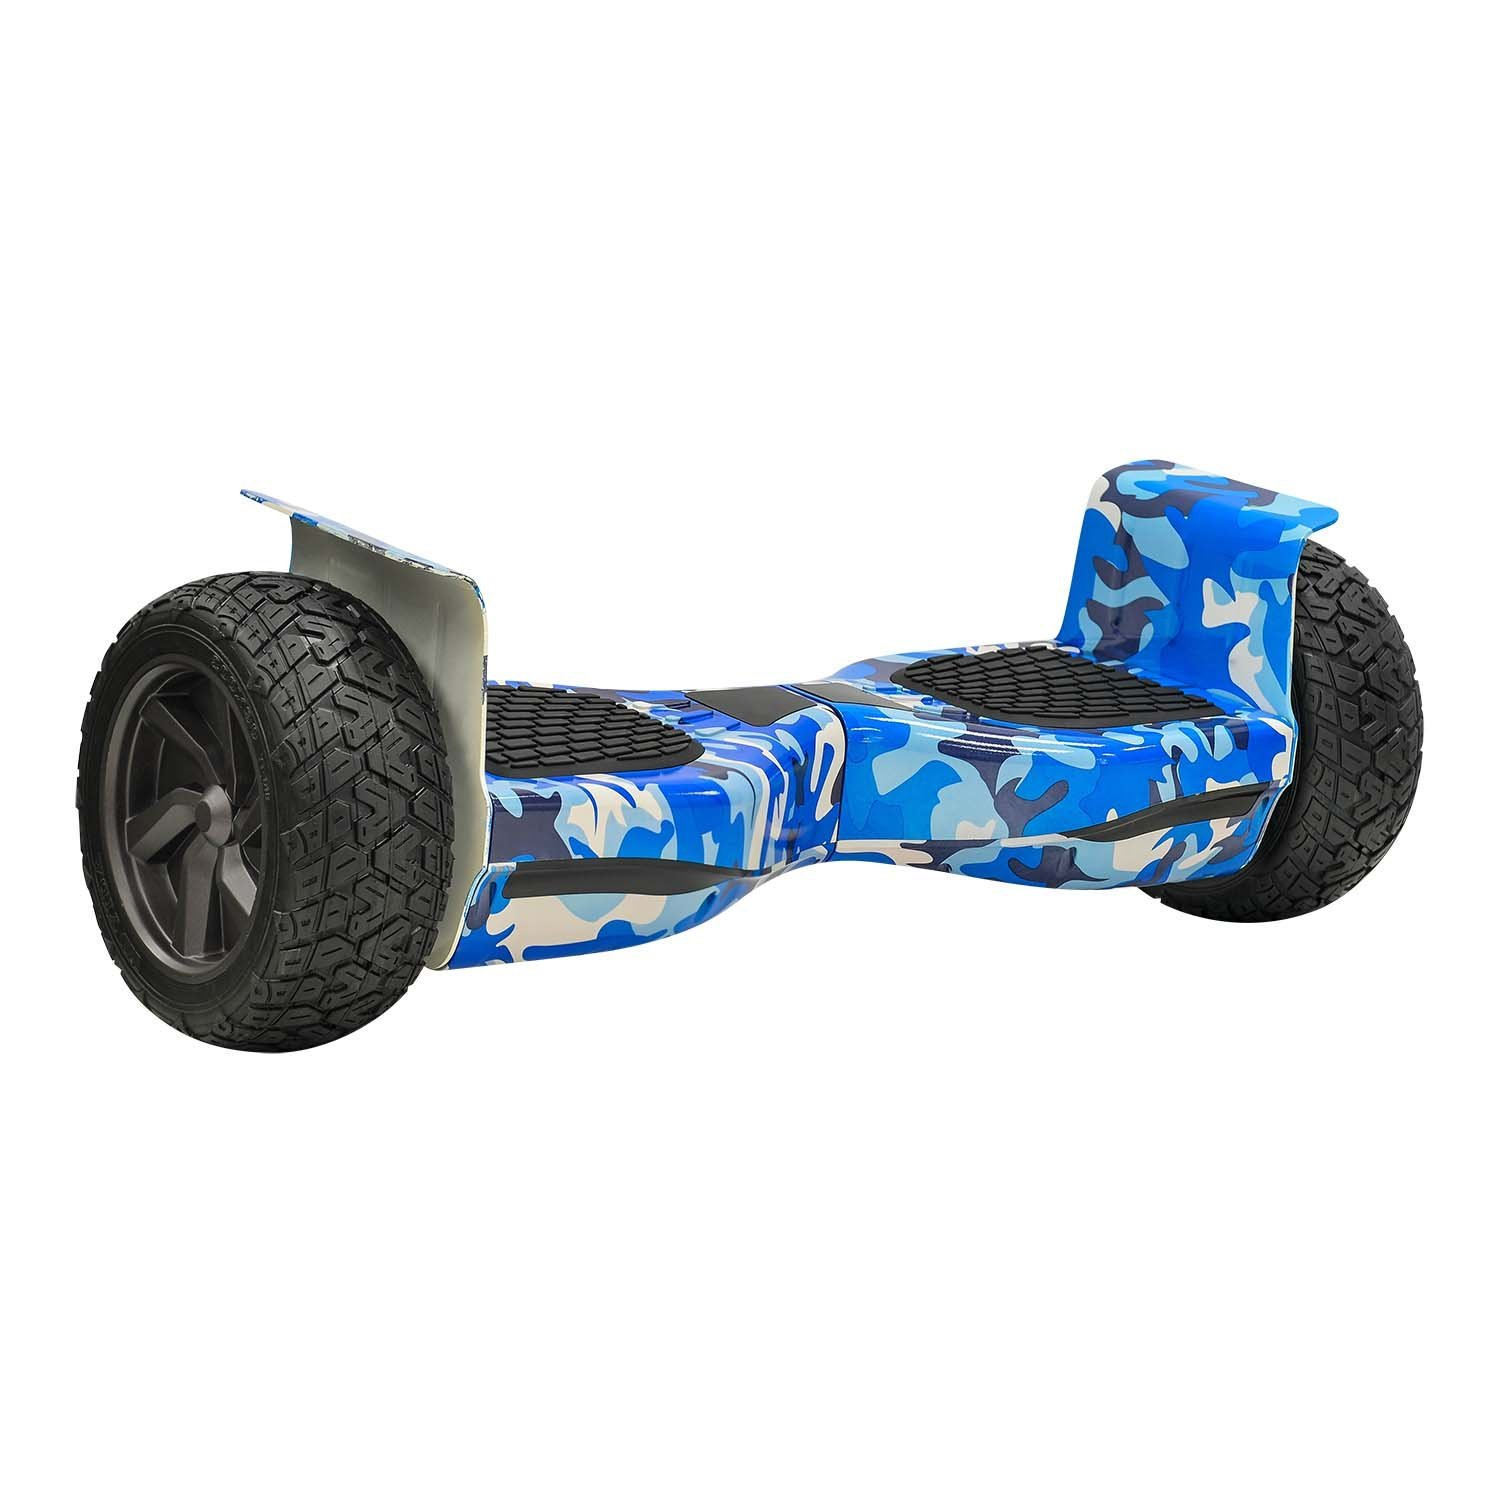 Nht Hoverboard All Terrain Rugged 8 5 Inch Wheels Off